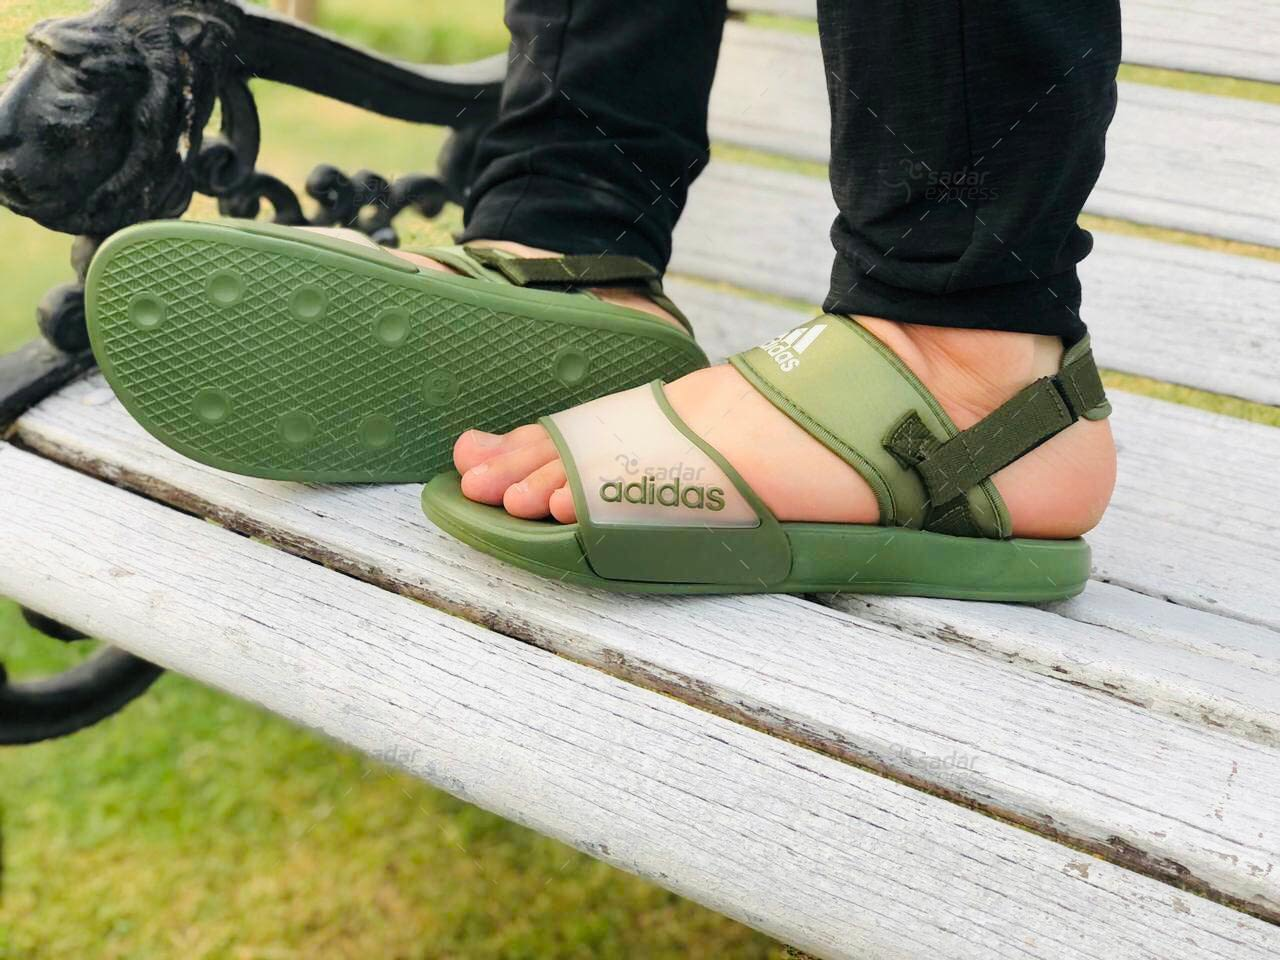 sports silicon rubber sandal for men 5